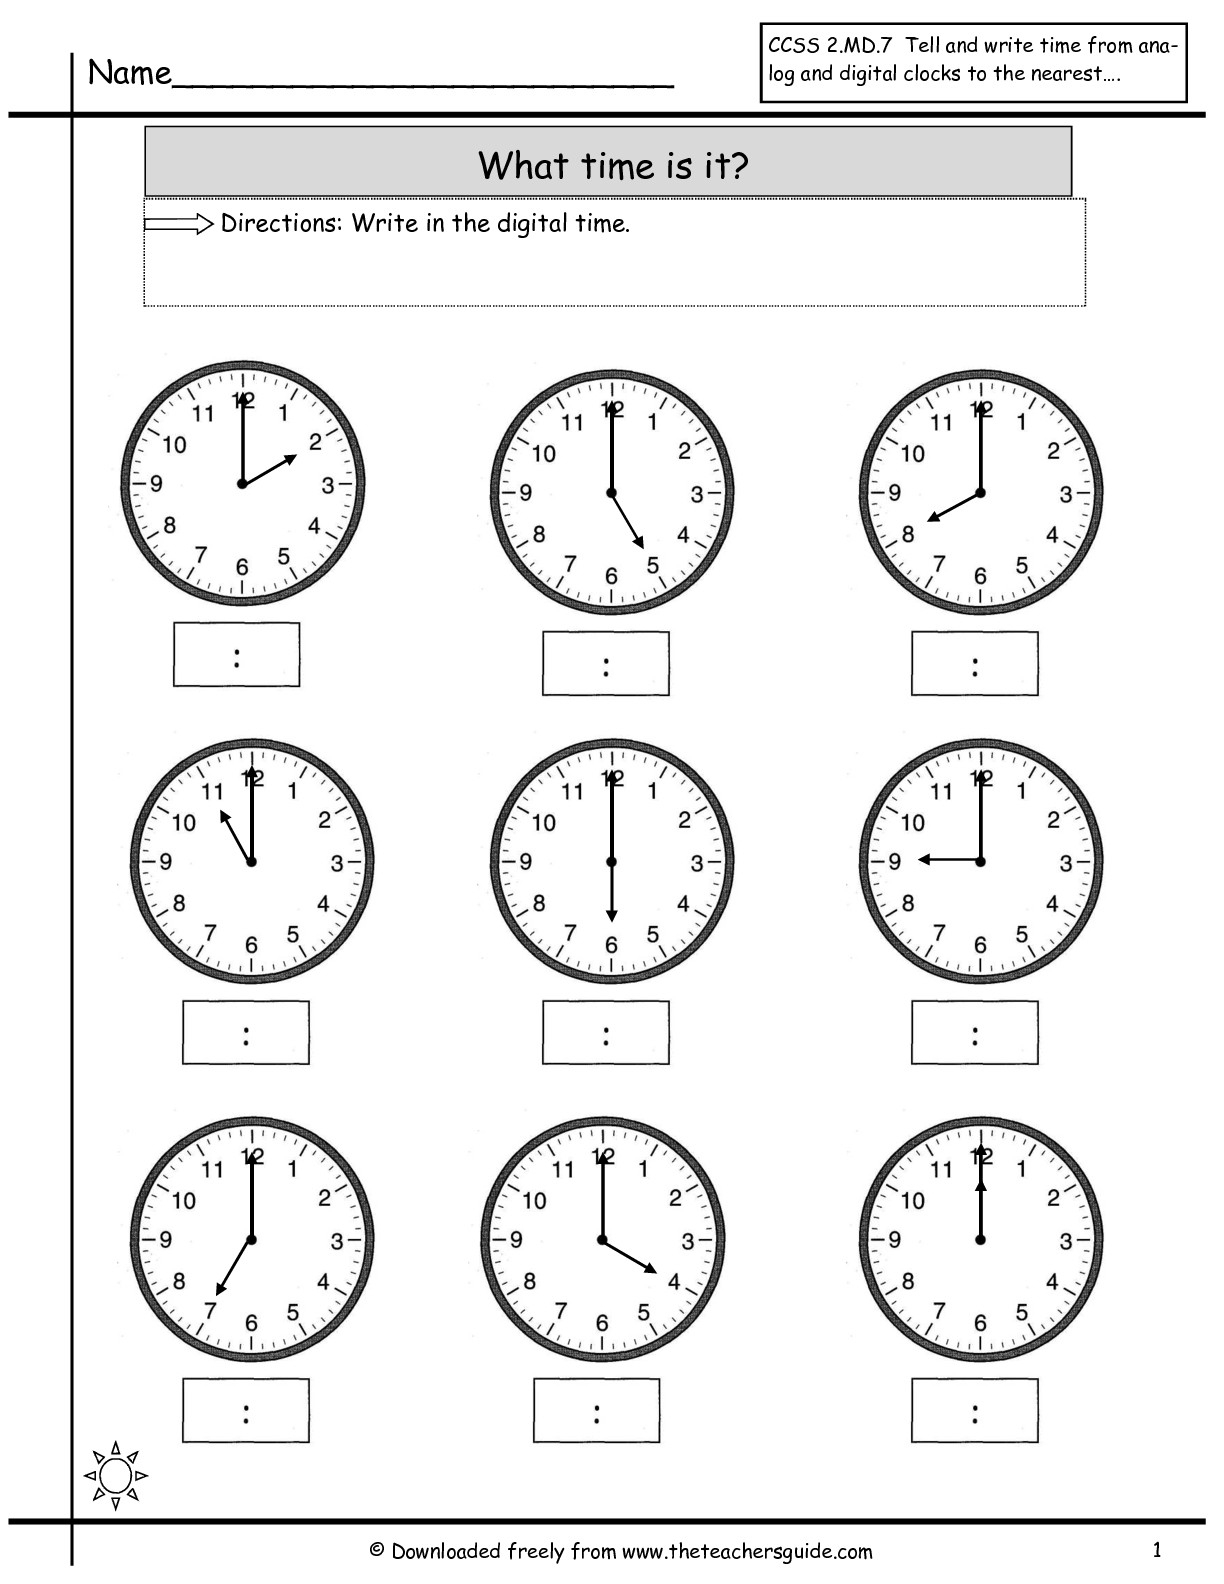 Telling Time Worksheets From The Teacher's Guide - Free Printable Telling Time Worksheets For 1St Grade